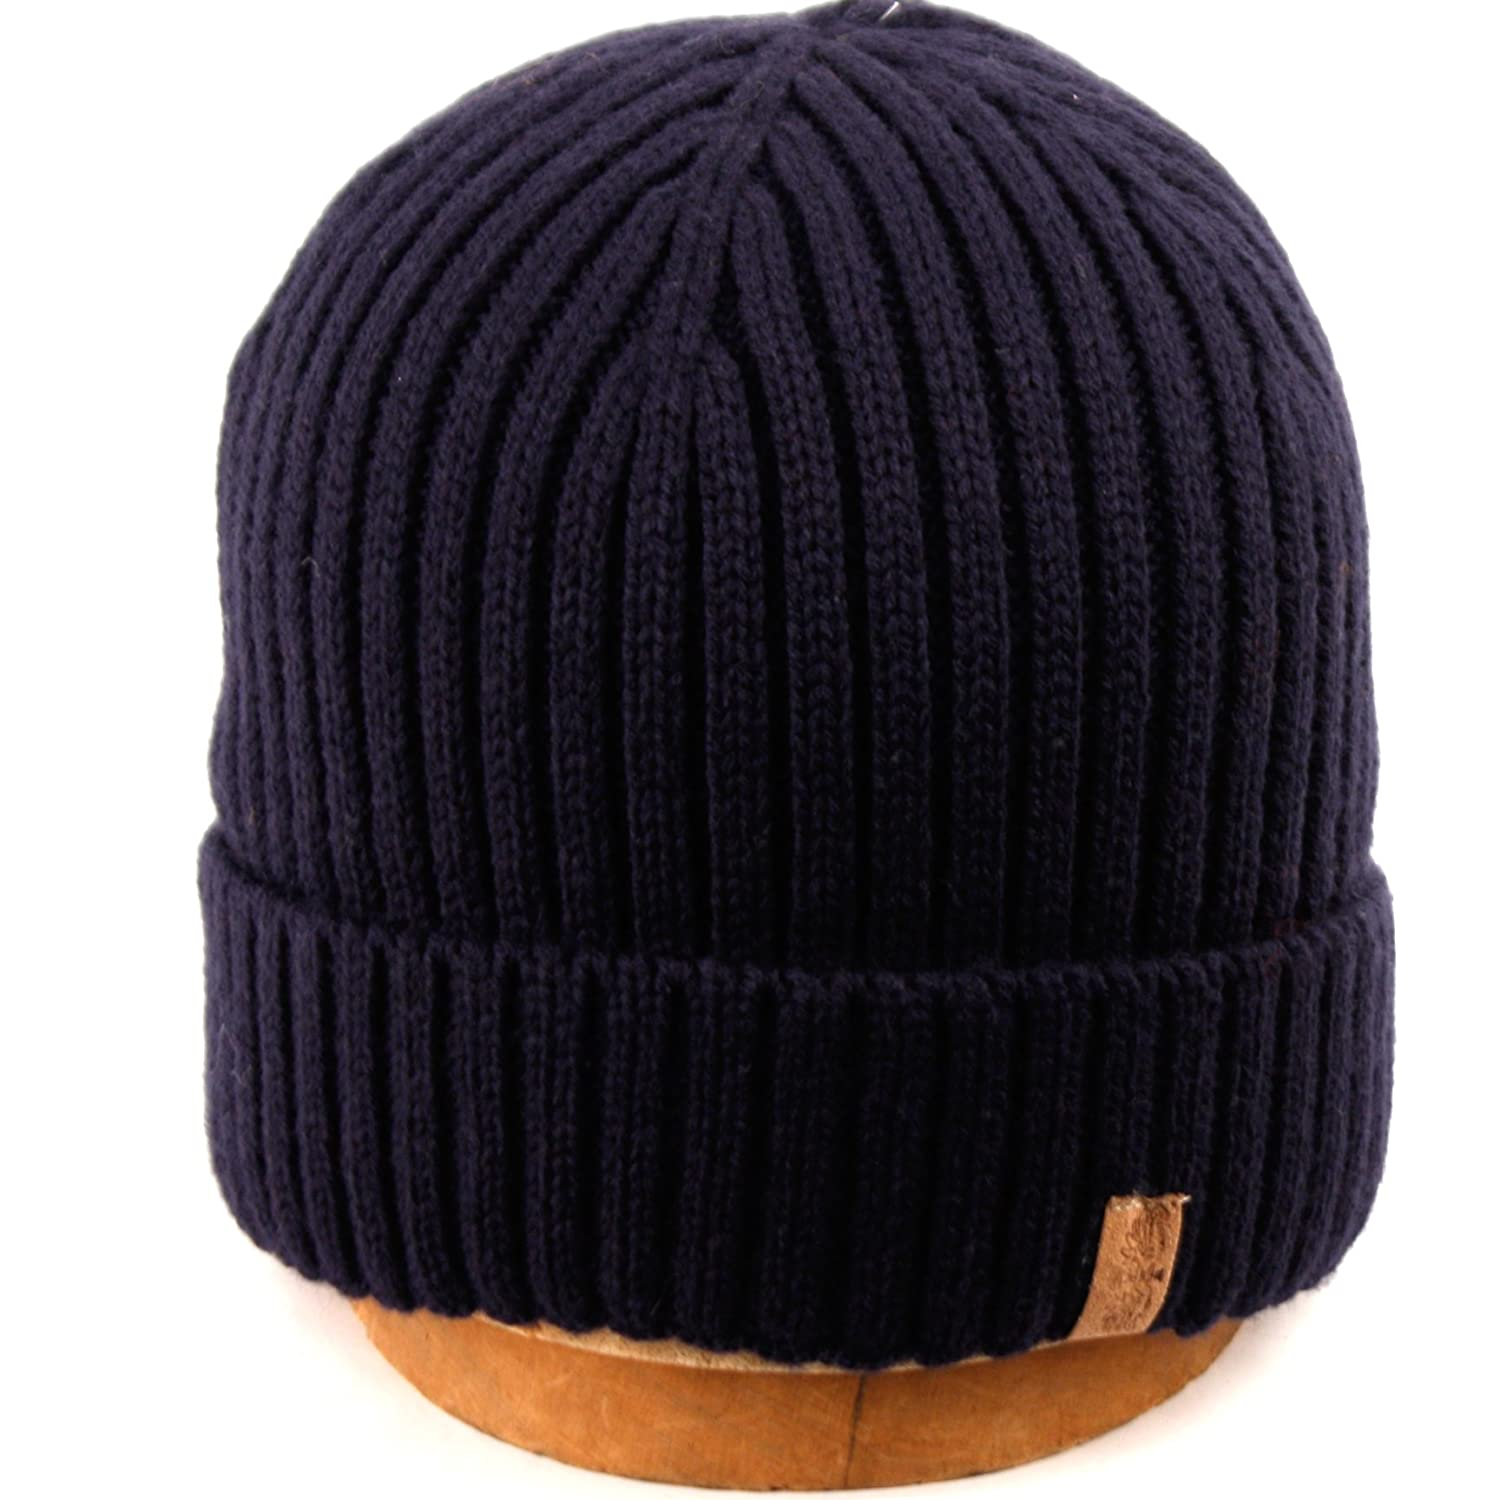 58dac7d6229 Bn1921 Polo Style Knit Beanie Cuff Hat (BLACK) at Amazon Men s Clothing  store